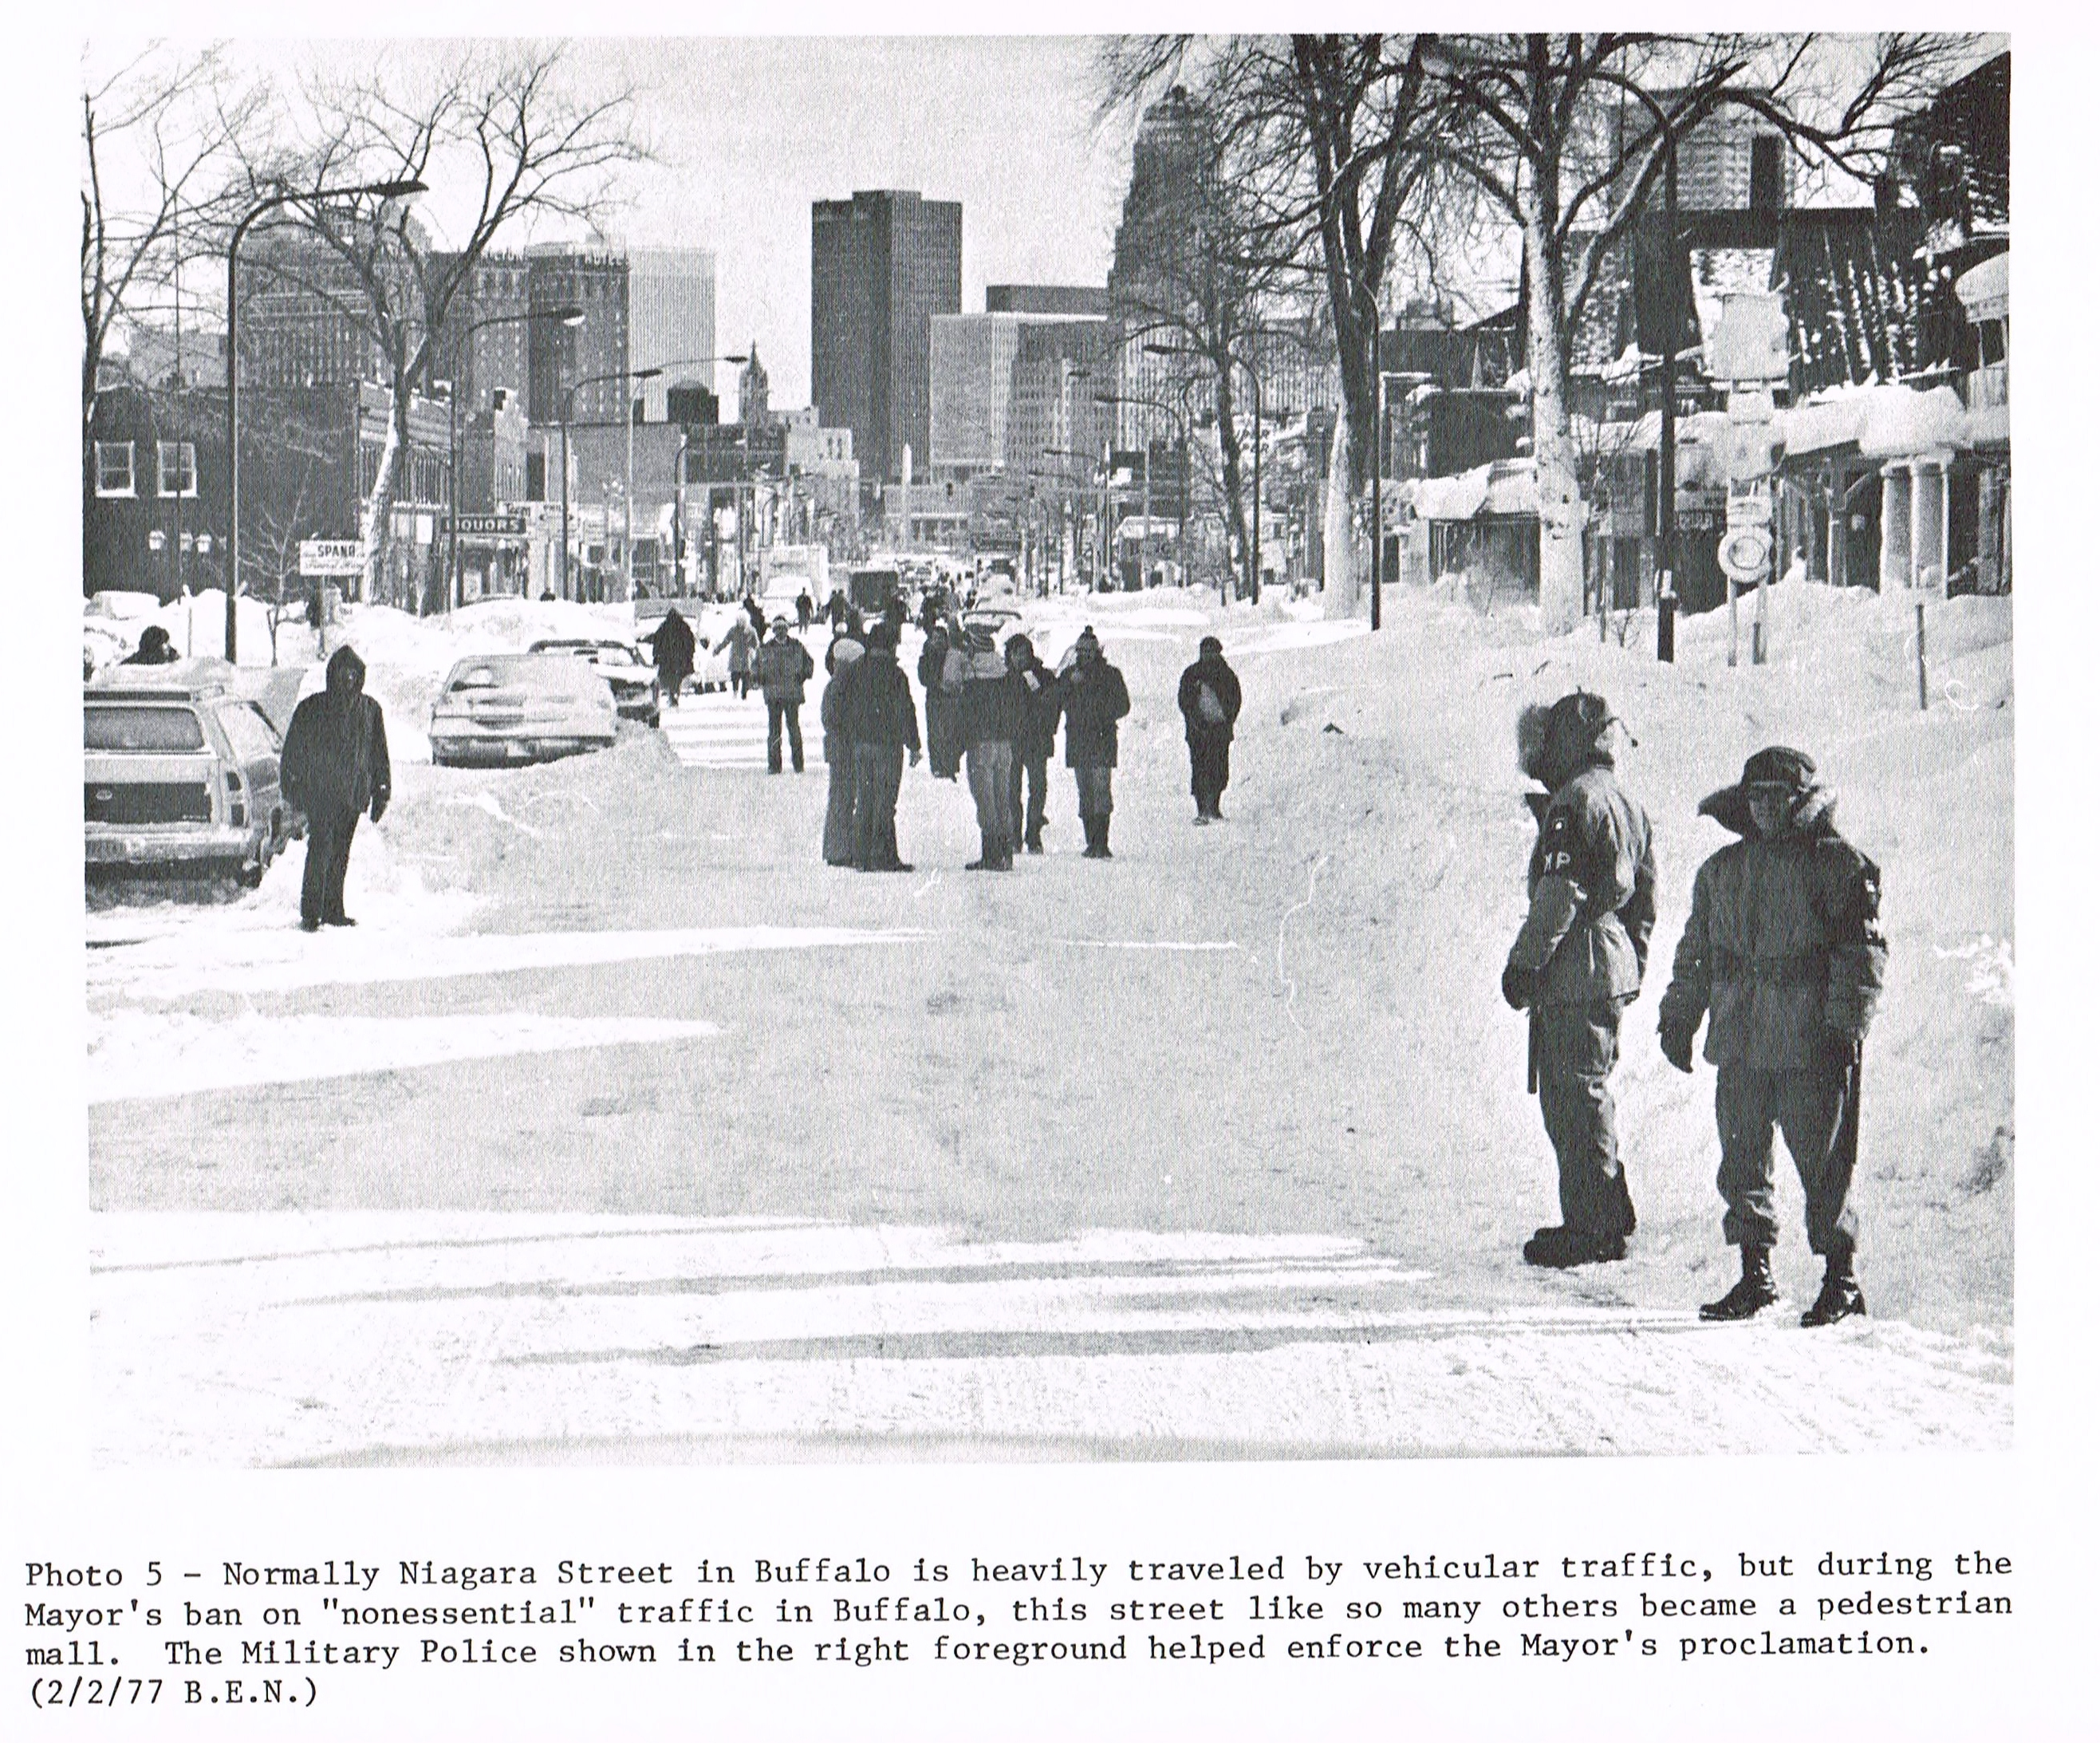 Niagara Street, Buffalo. Feb. 2, 1977, Buffalo Evening News.